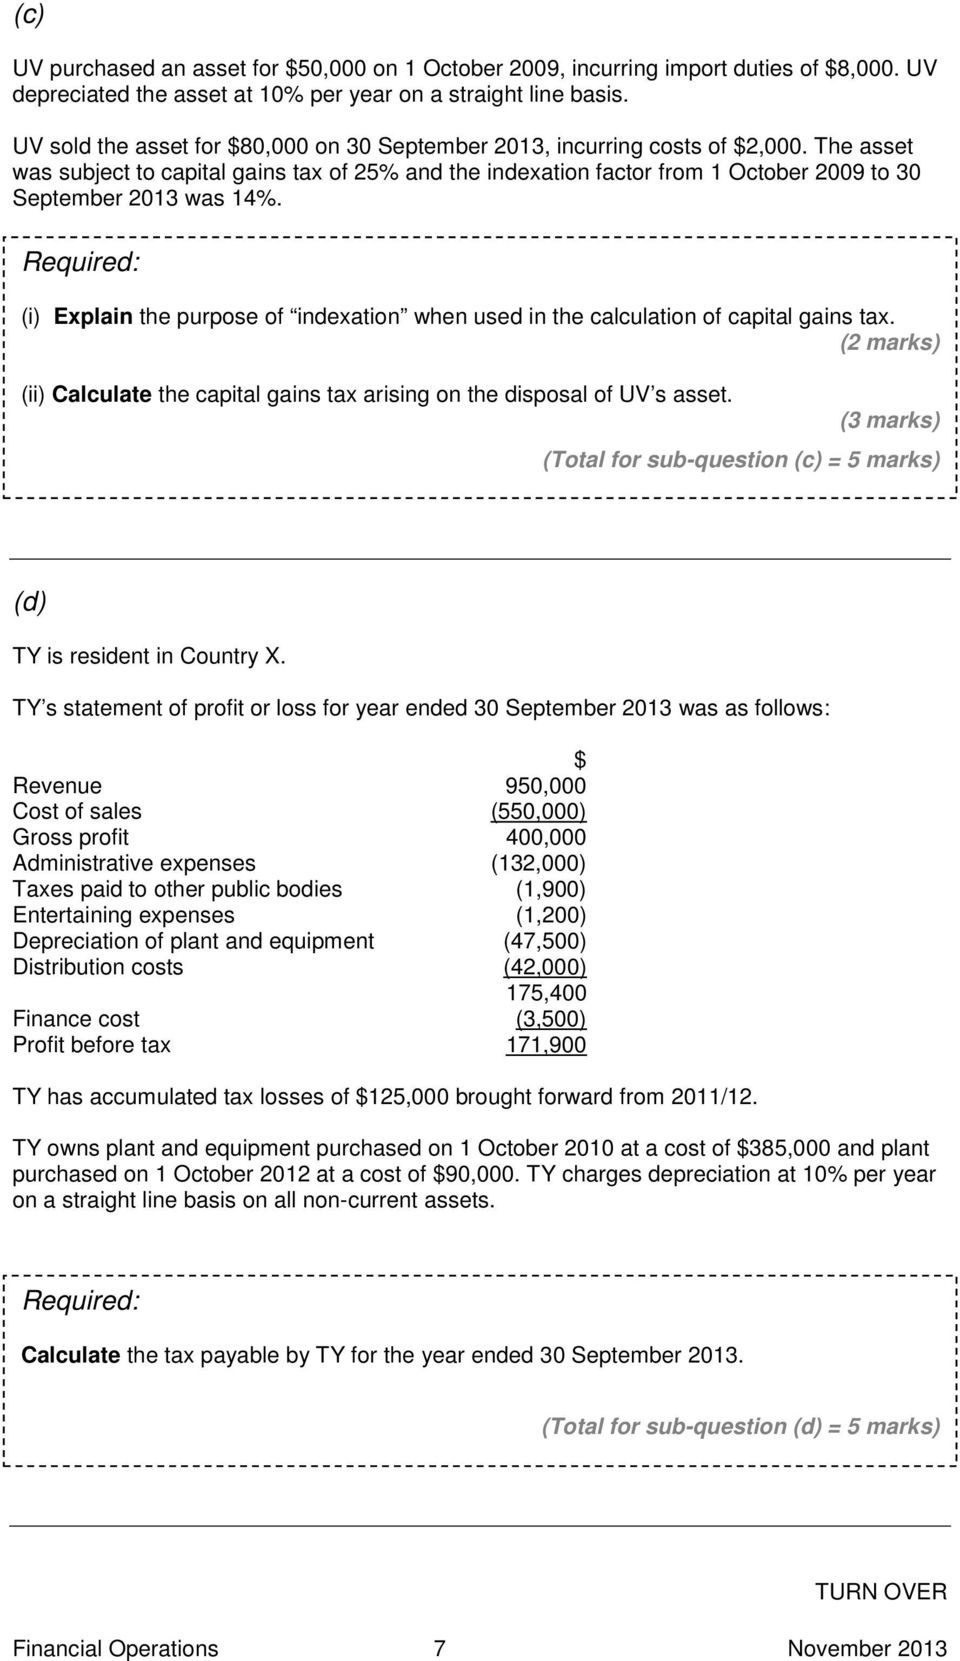 The asset was subject to capital gains tax of 25% and the indexation factor from 1 October 2009 to 30 September 2013 was 14%.